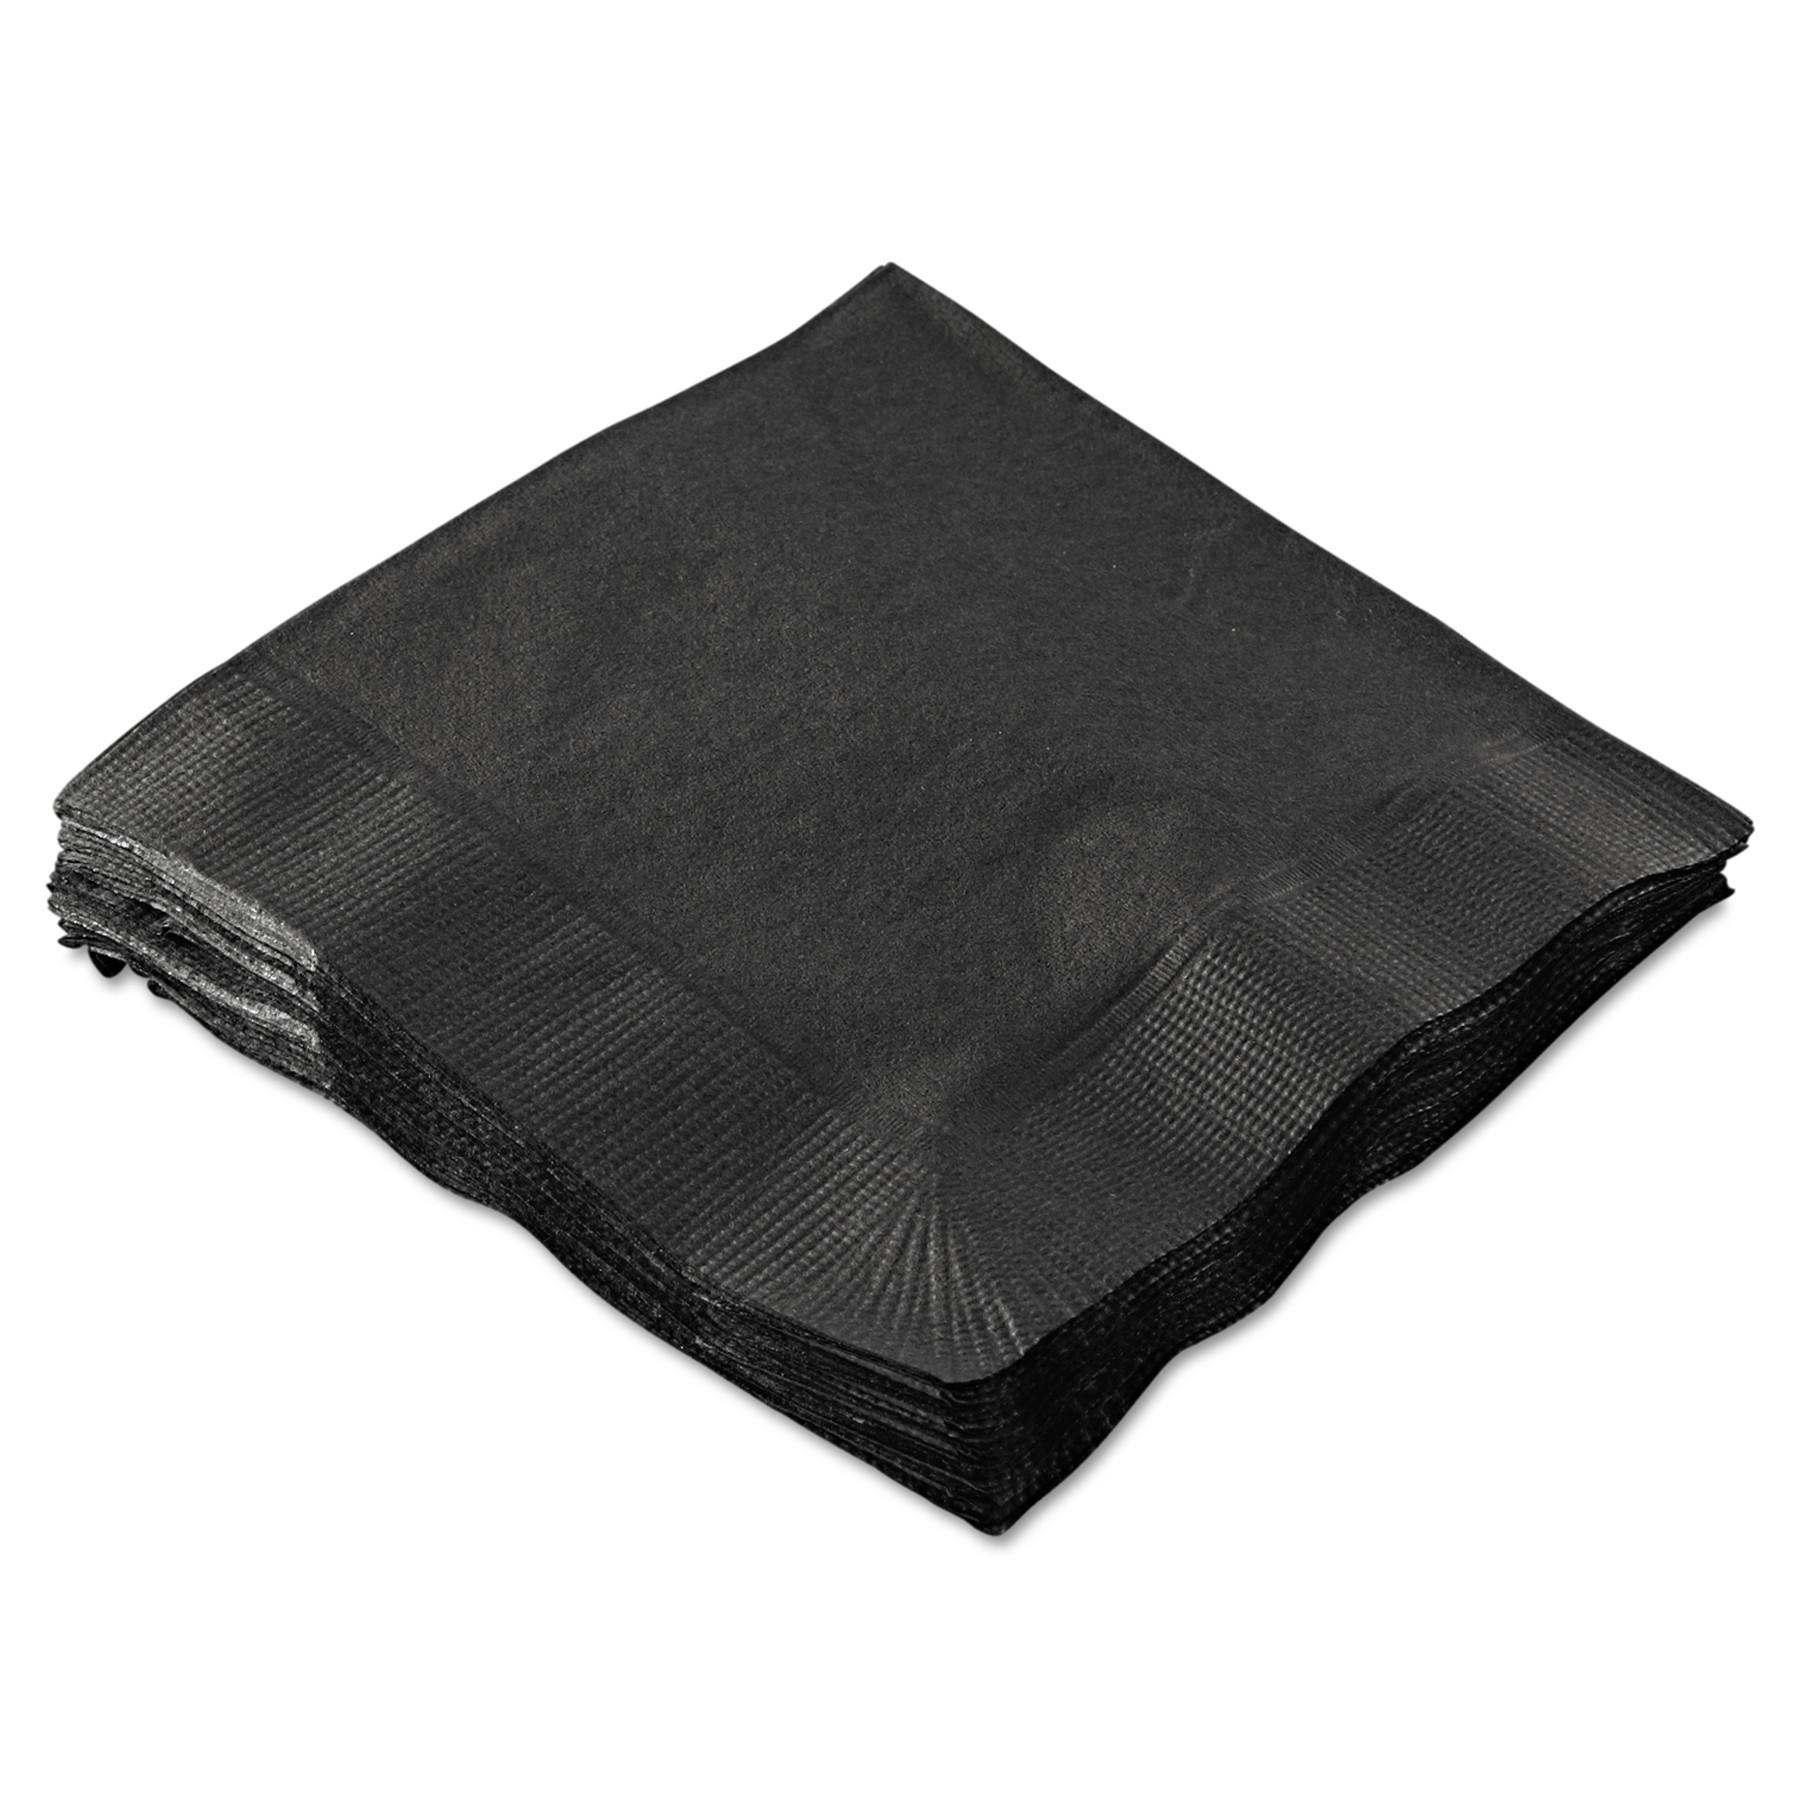 Hoffmaster 2-Ply Cocktail Napkins, Black, 1000 count